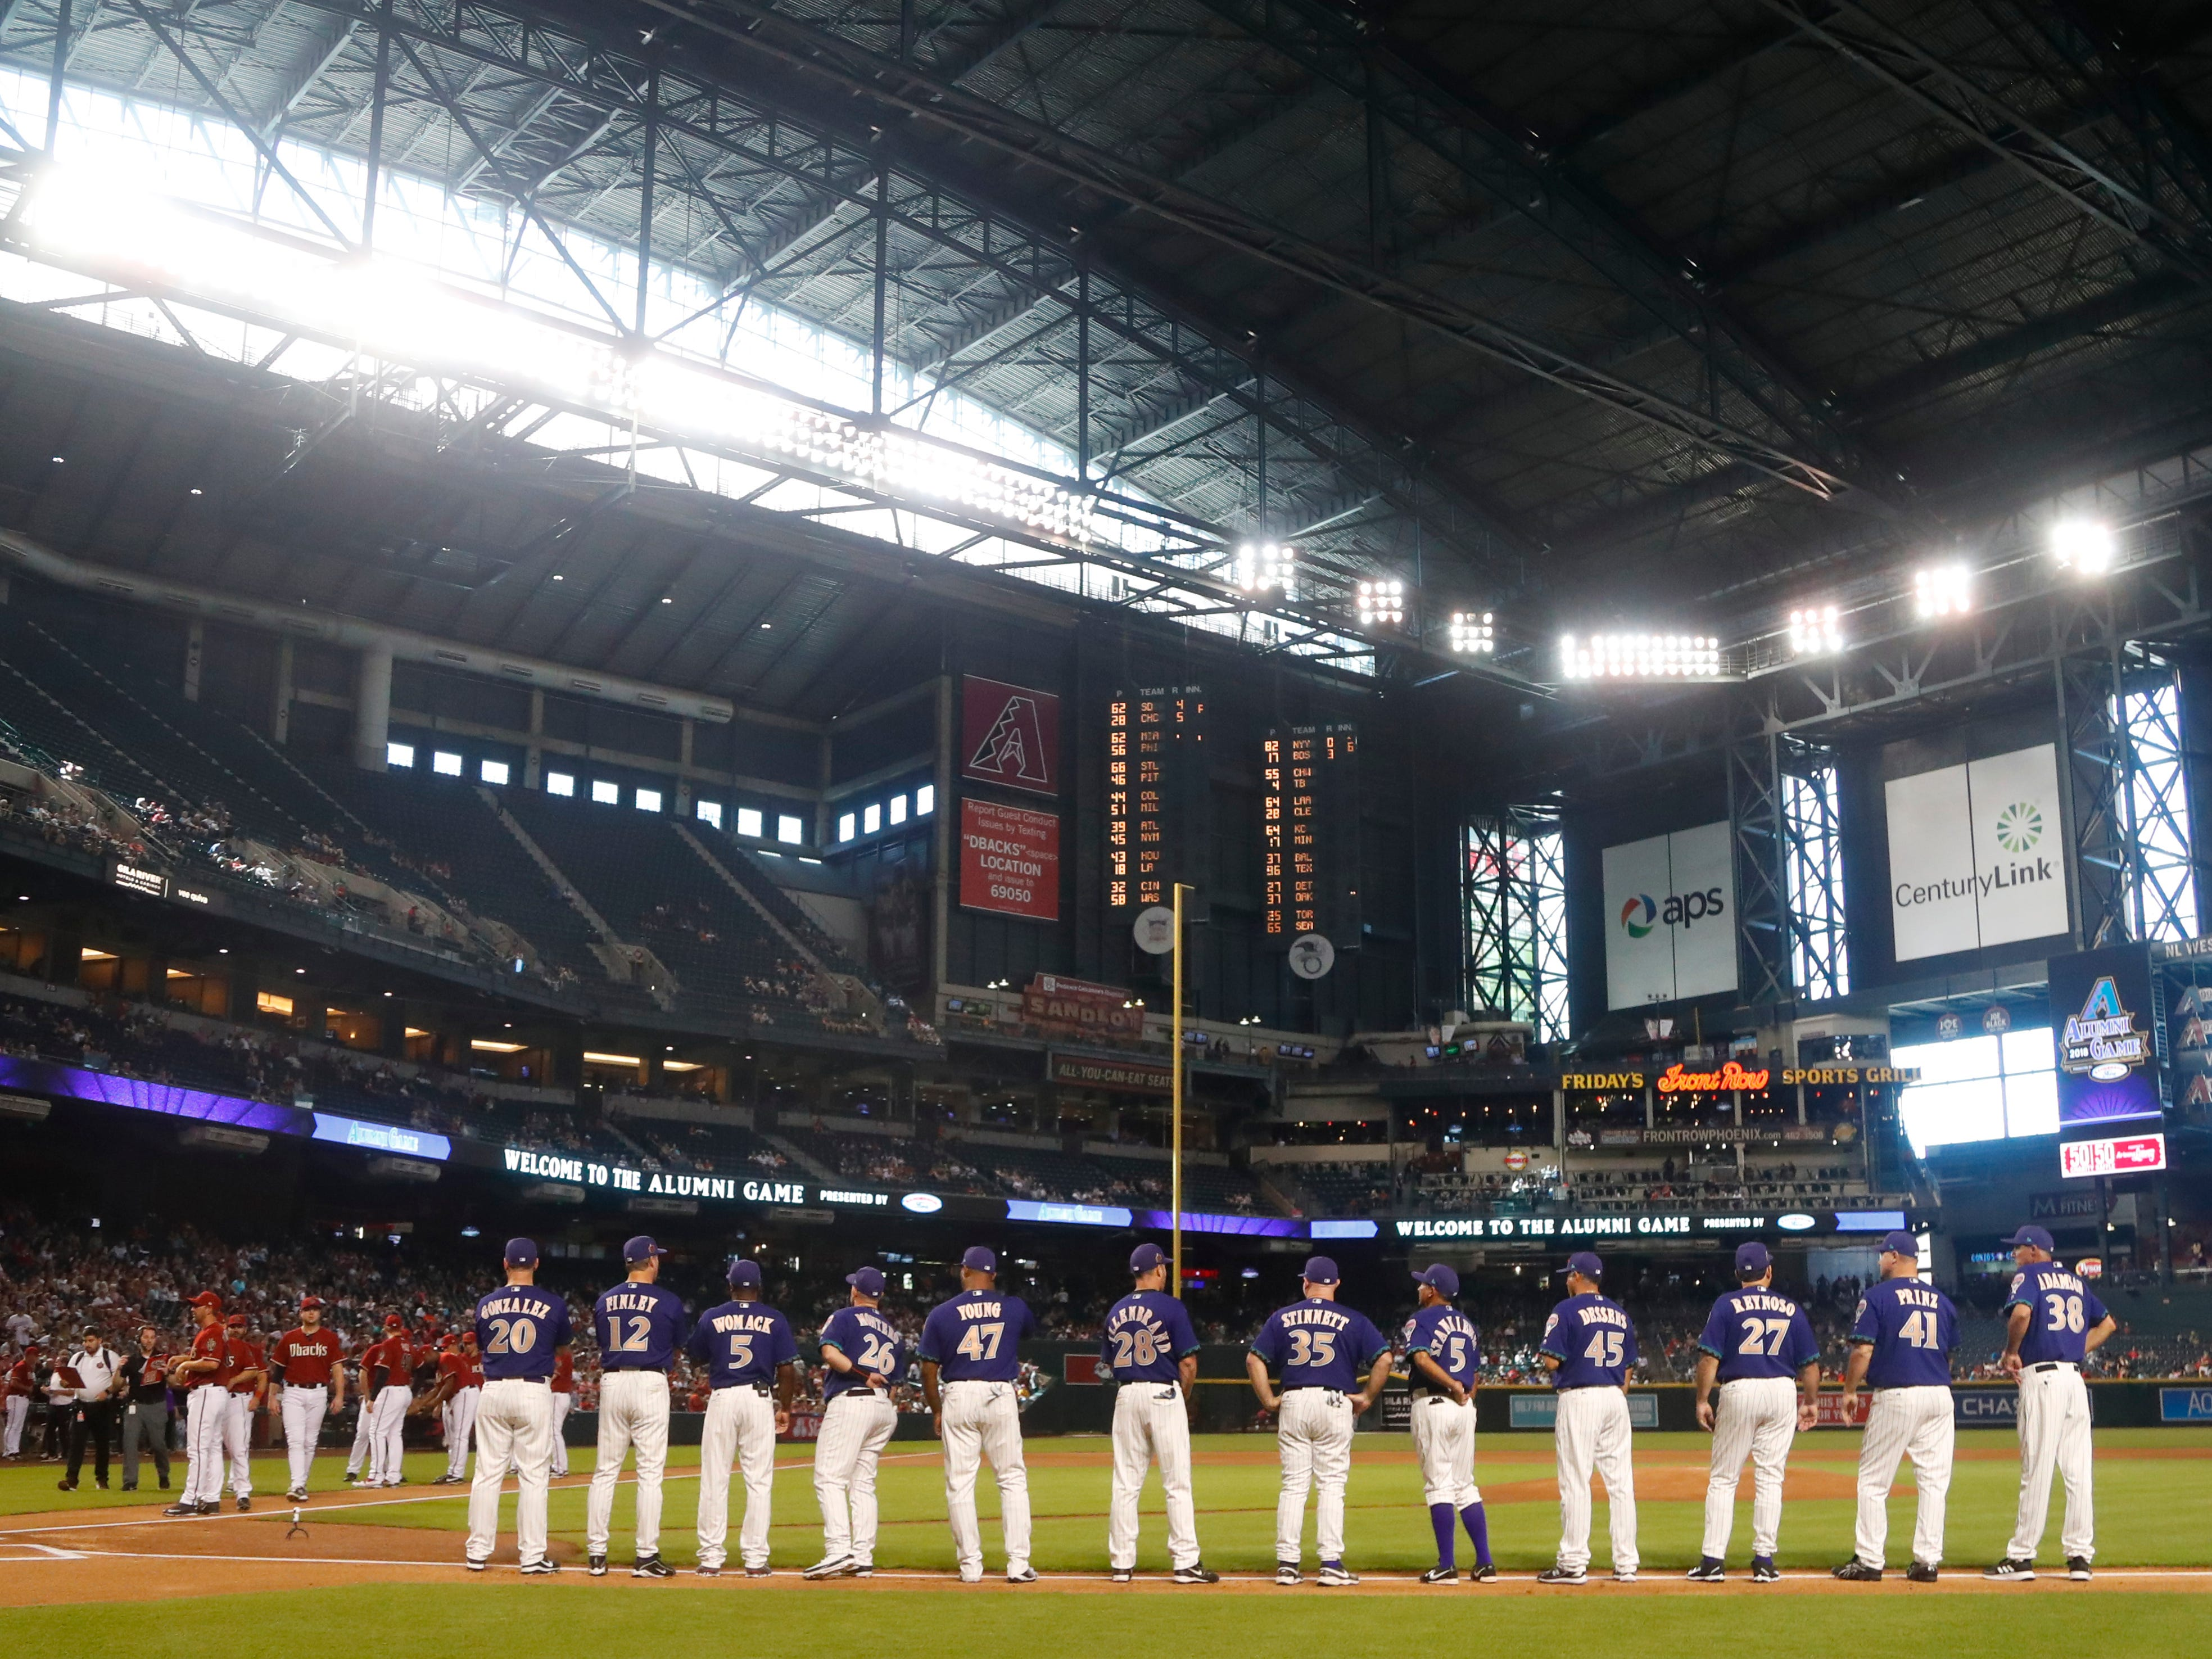 Diamondbacks Purple and Red team take the field prior to the Generations Diamomdbacks Alumni game at Chase Field in Phoenix, Ariz. on Aug. 4, 2018.